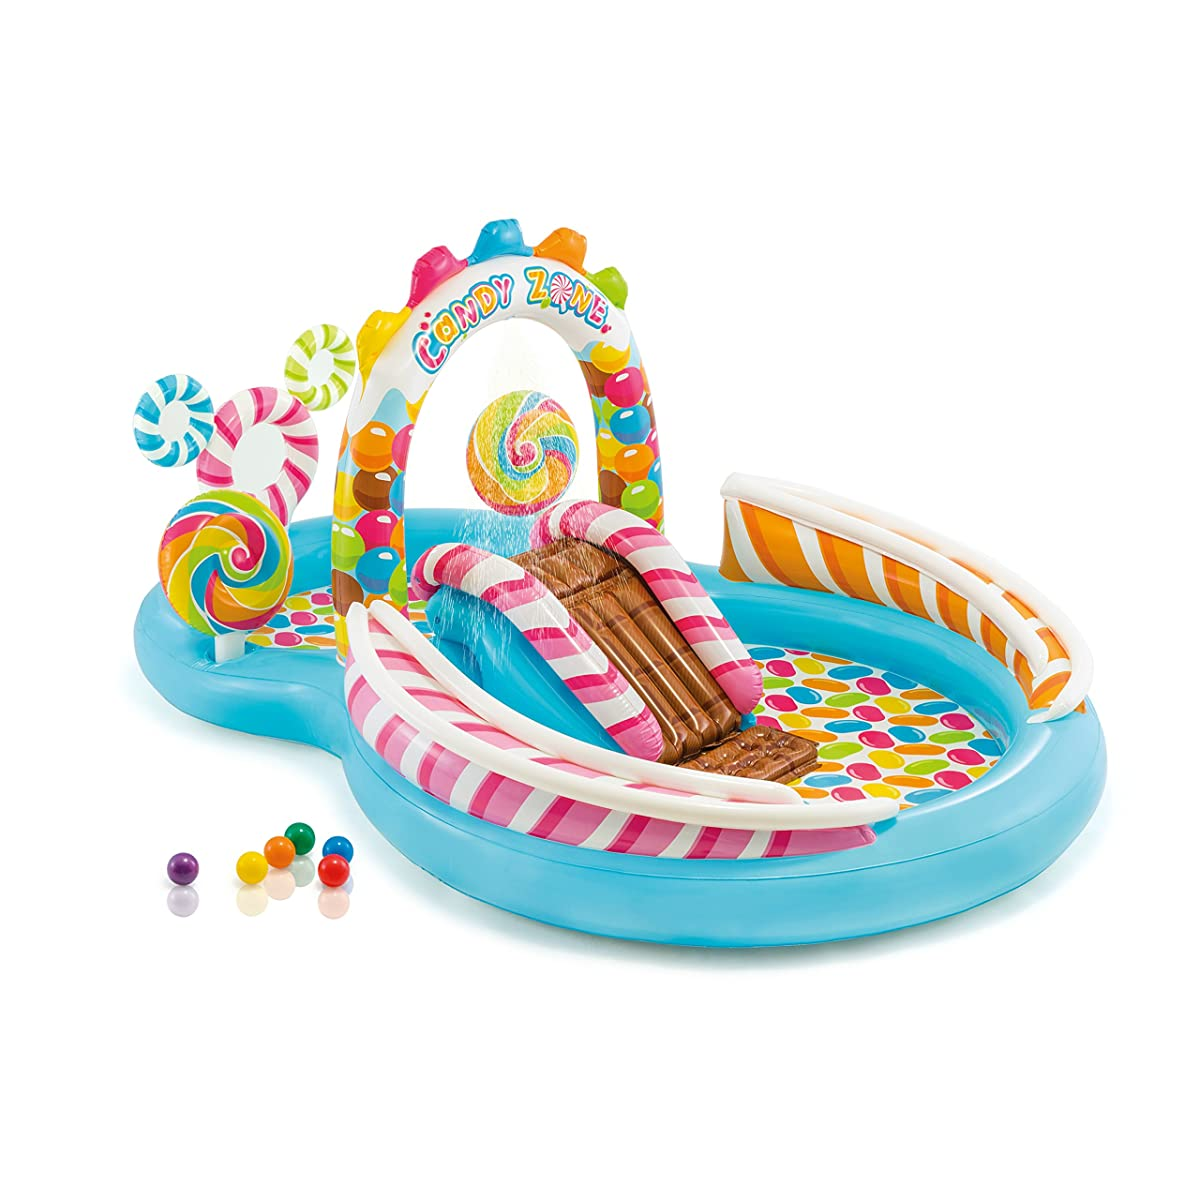 """Intex Candy Zone Inflatable Play Center, 116"""" X 75"""" X 51"""", for Ages 2+"""